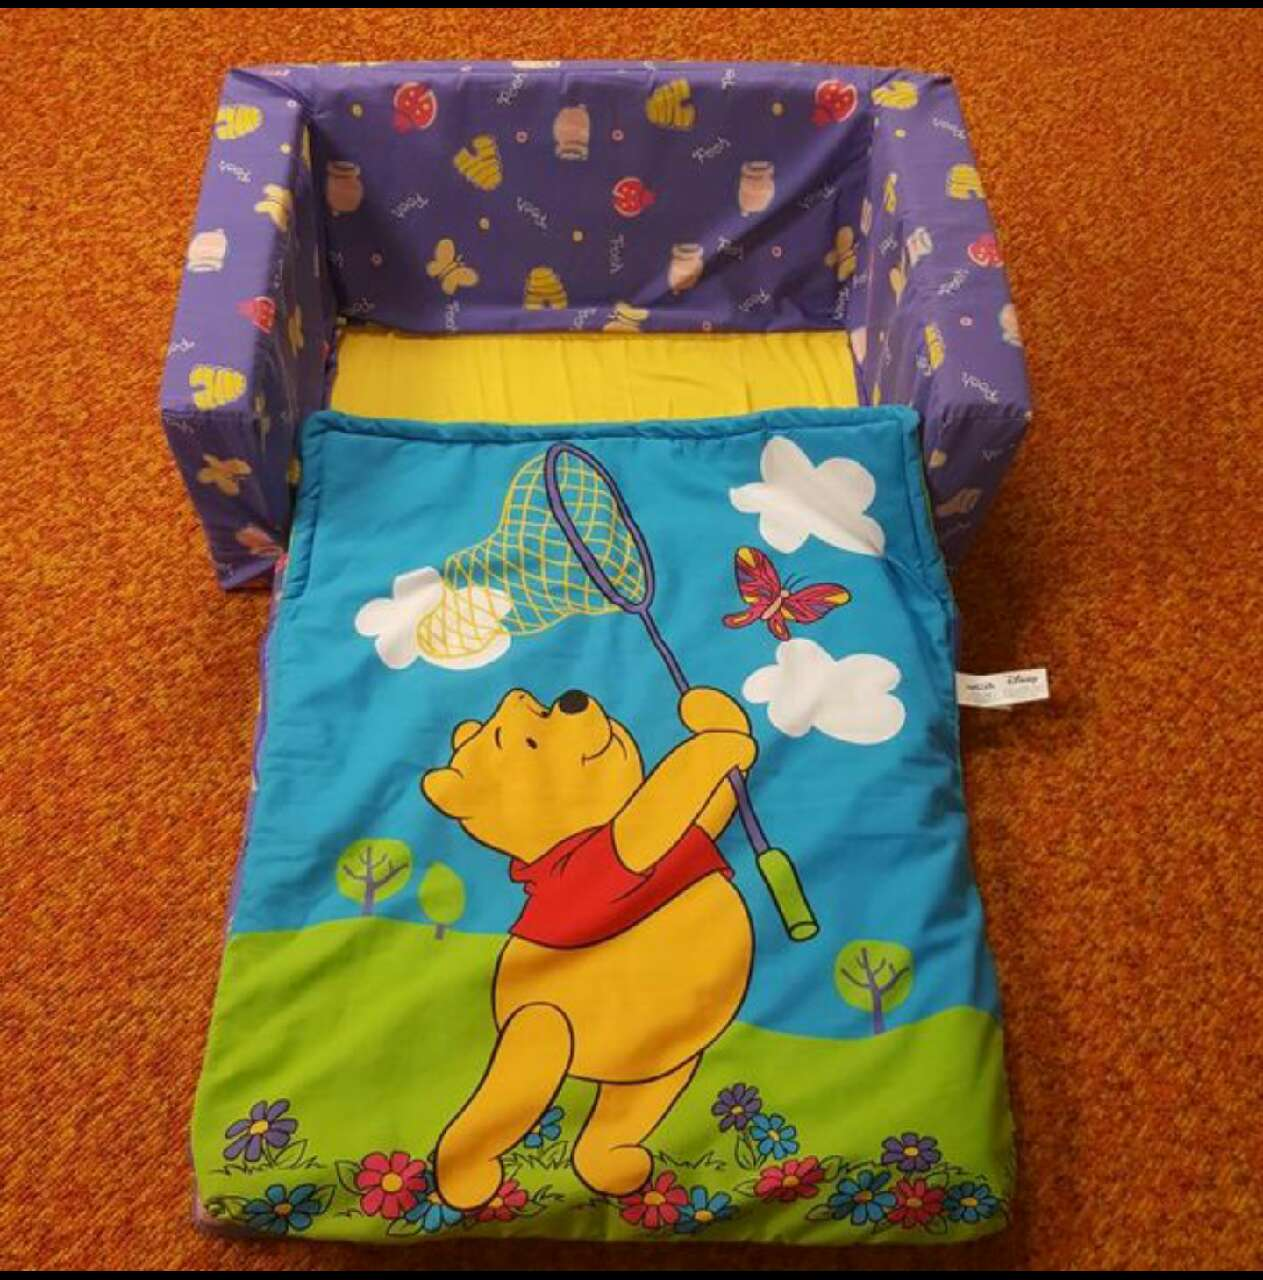 disney princess flip out sofa with slumber bag ikea karlstad covers uk letgo winnie the pooh s in utica mi